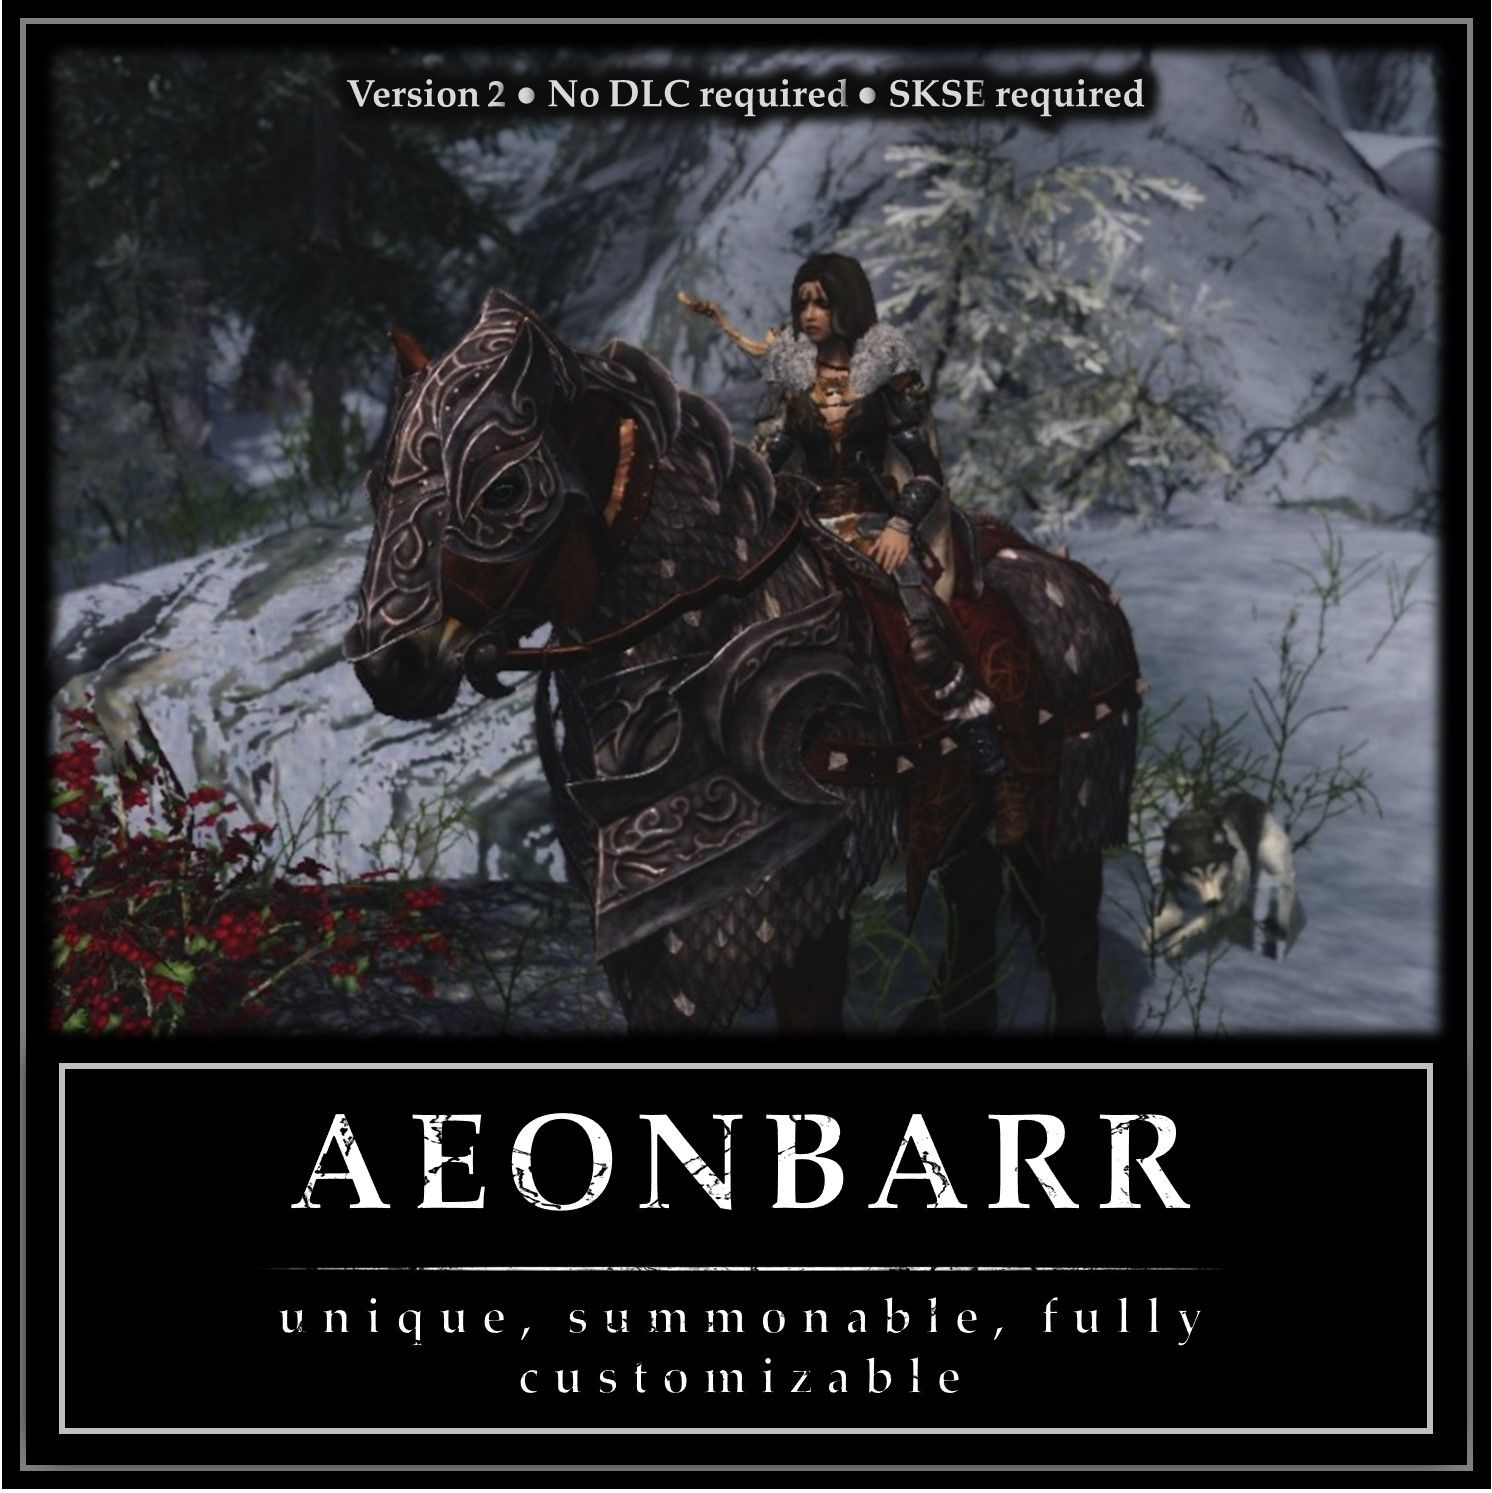 Aeonbarr - a Unique and Summonable Horse (CH-Friendly) at Skyrim